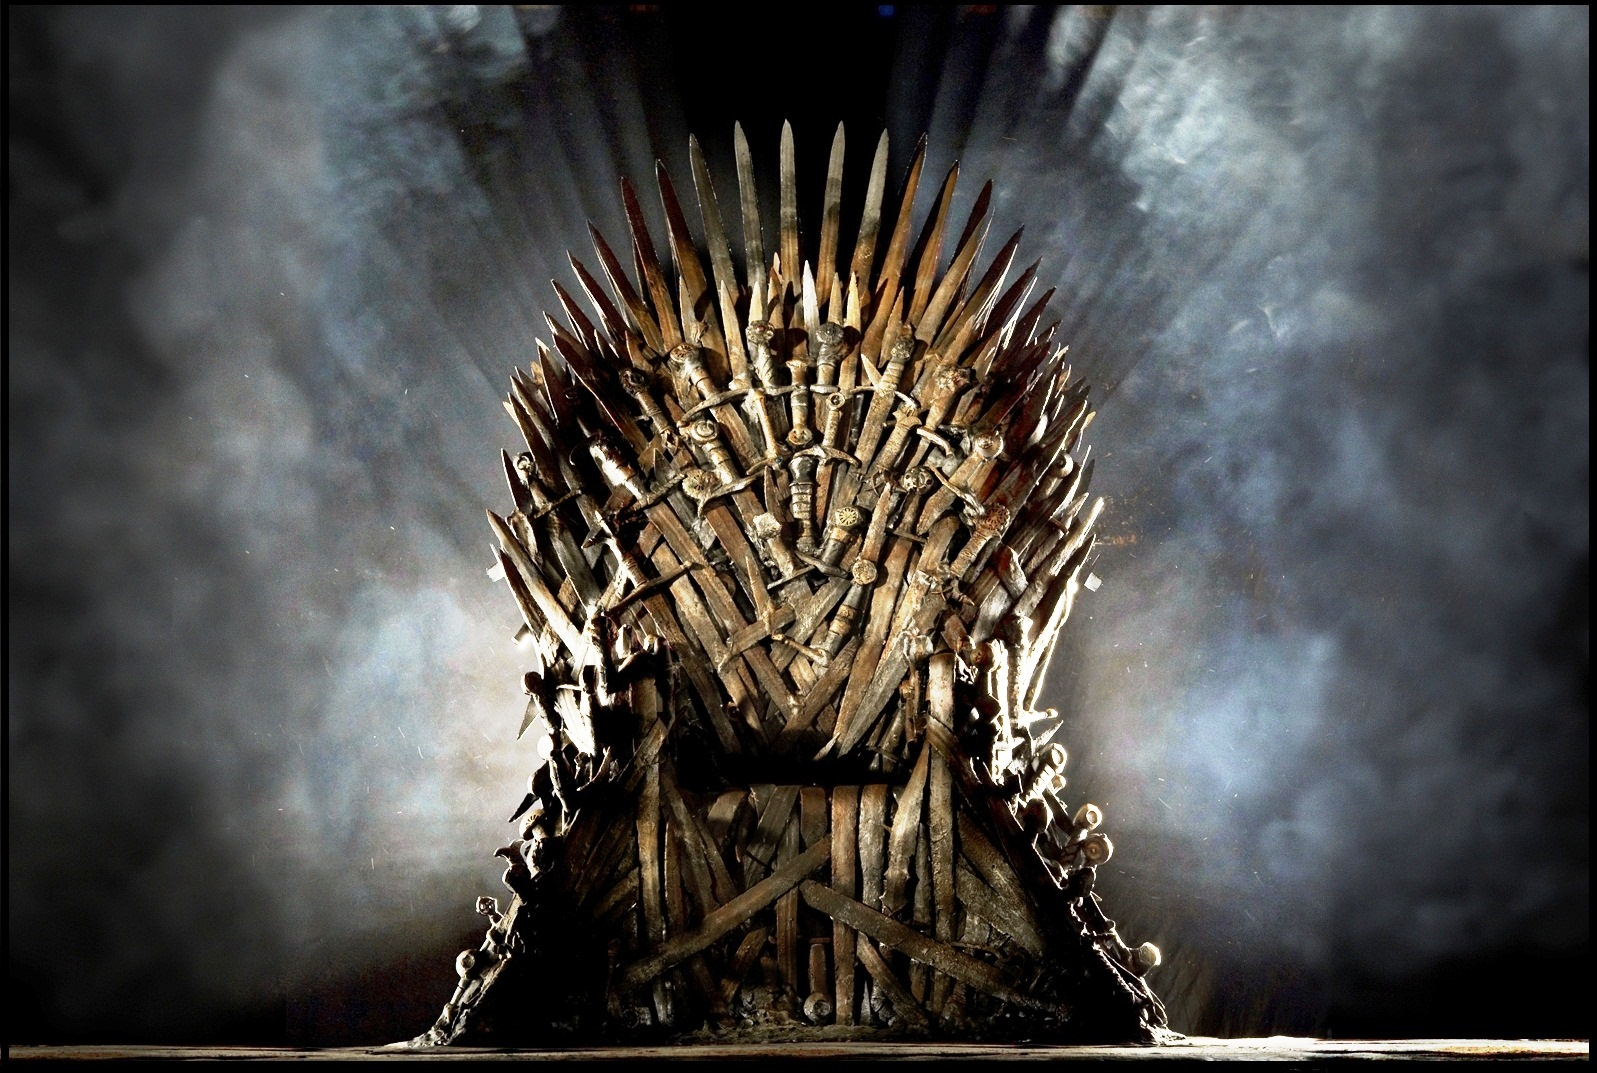 game of thrones 2011 wallpaper iron throne DAILYBEST 1597x1073